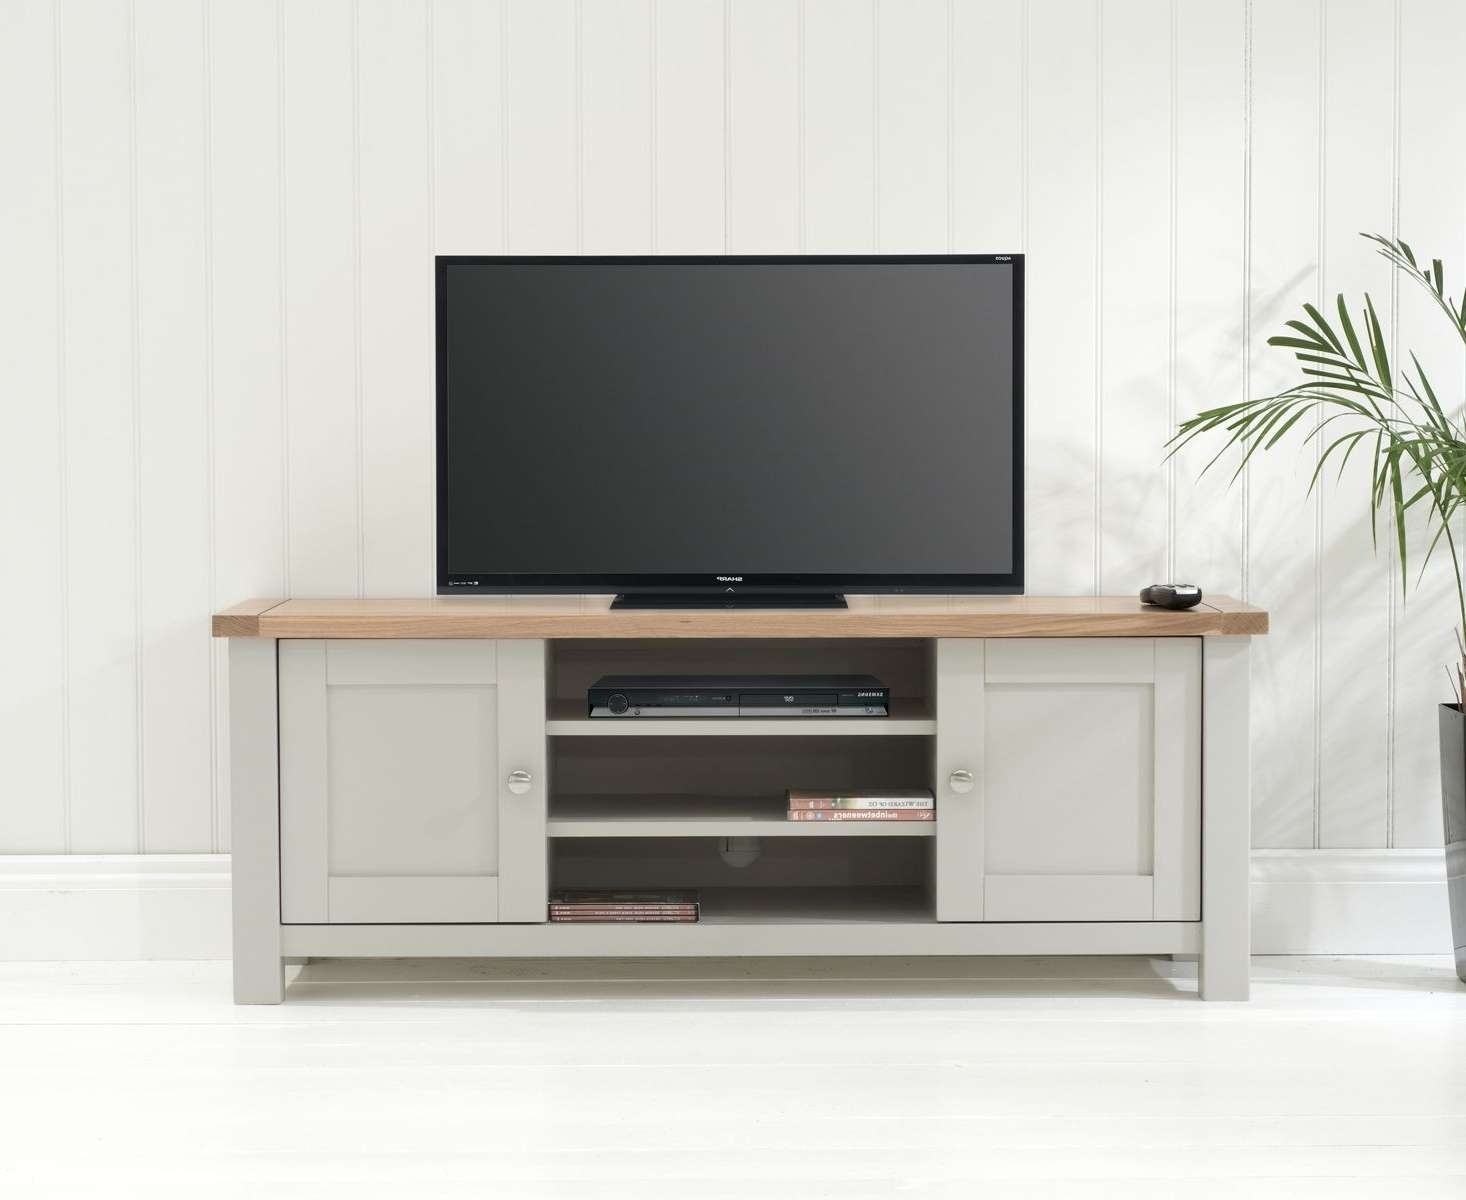 Oak Tv & Entertainment Units | Oak Furniture Superstore For Long Oak Tv Stands (Gallery 19 of 20)